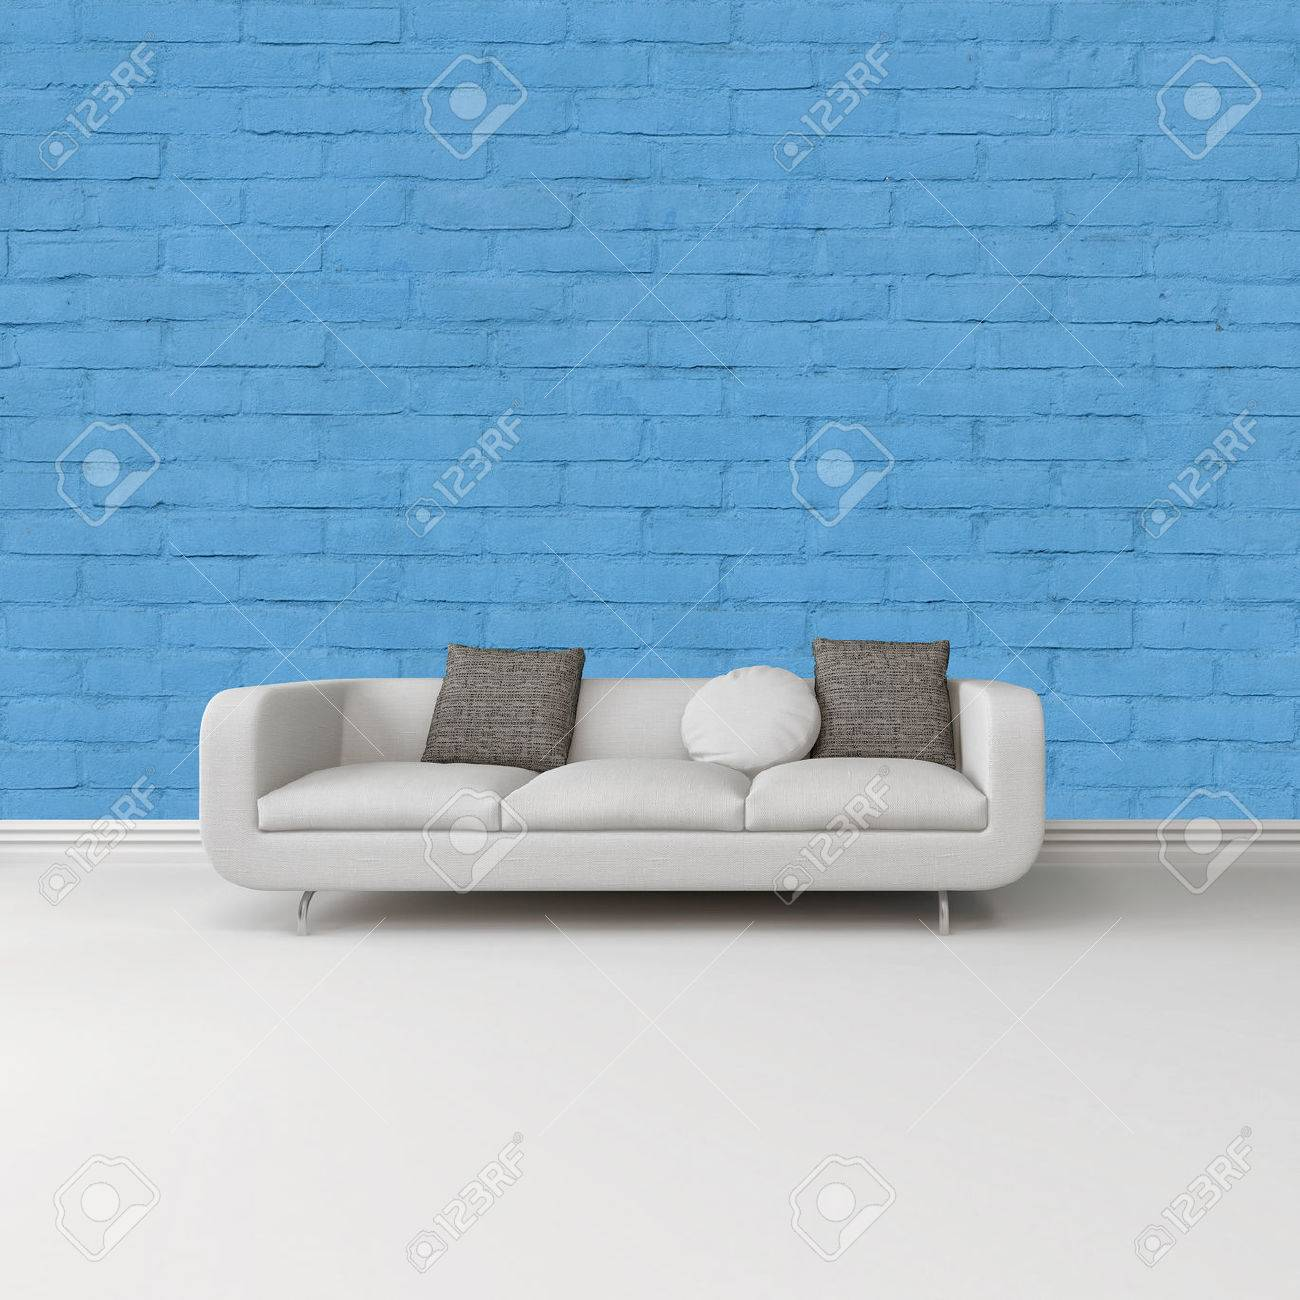 Modern White Sofa With Grey Cushions Against A Bright Blue Wall On A White  Floor With